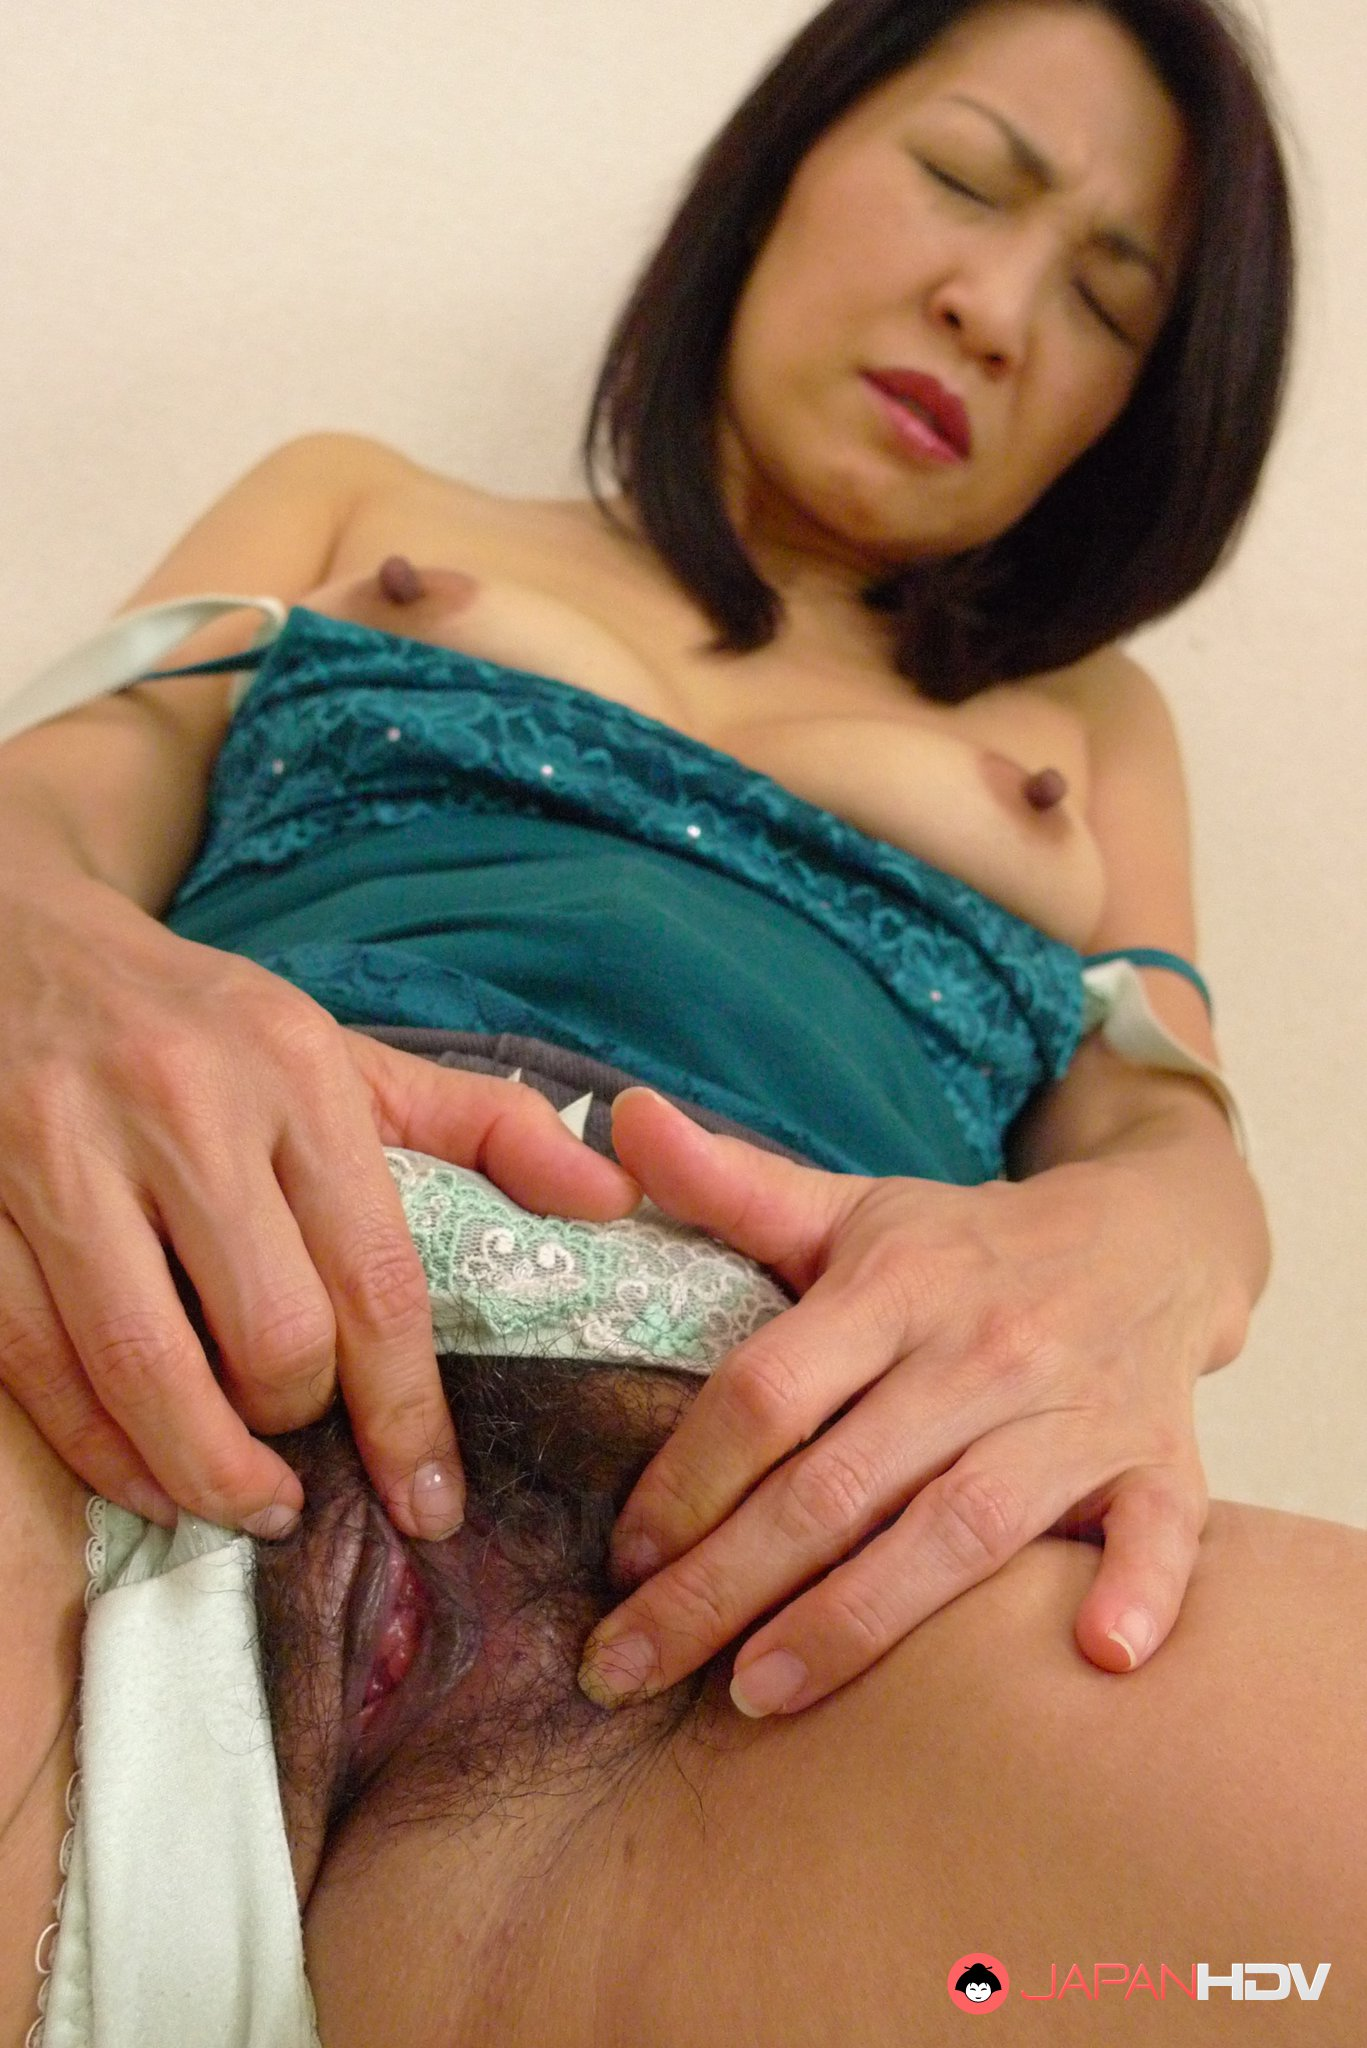 image Horny thick asian teases and stretches her tight pussy